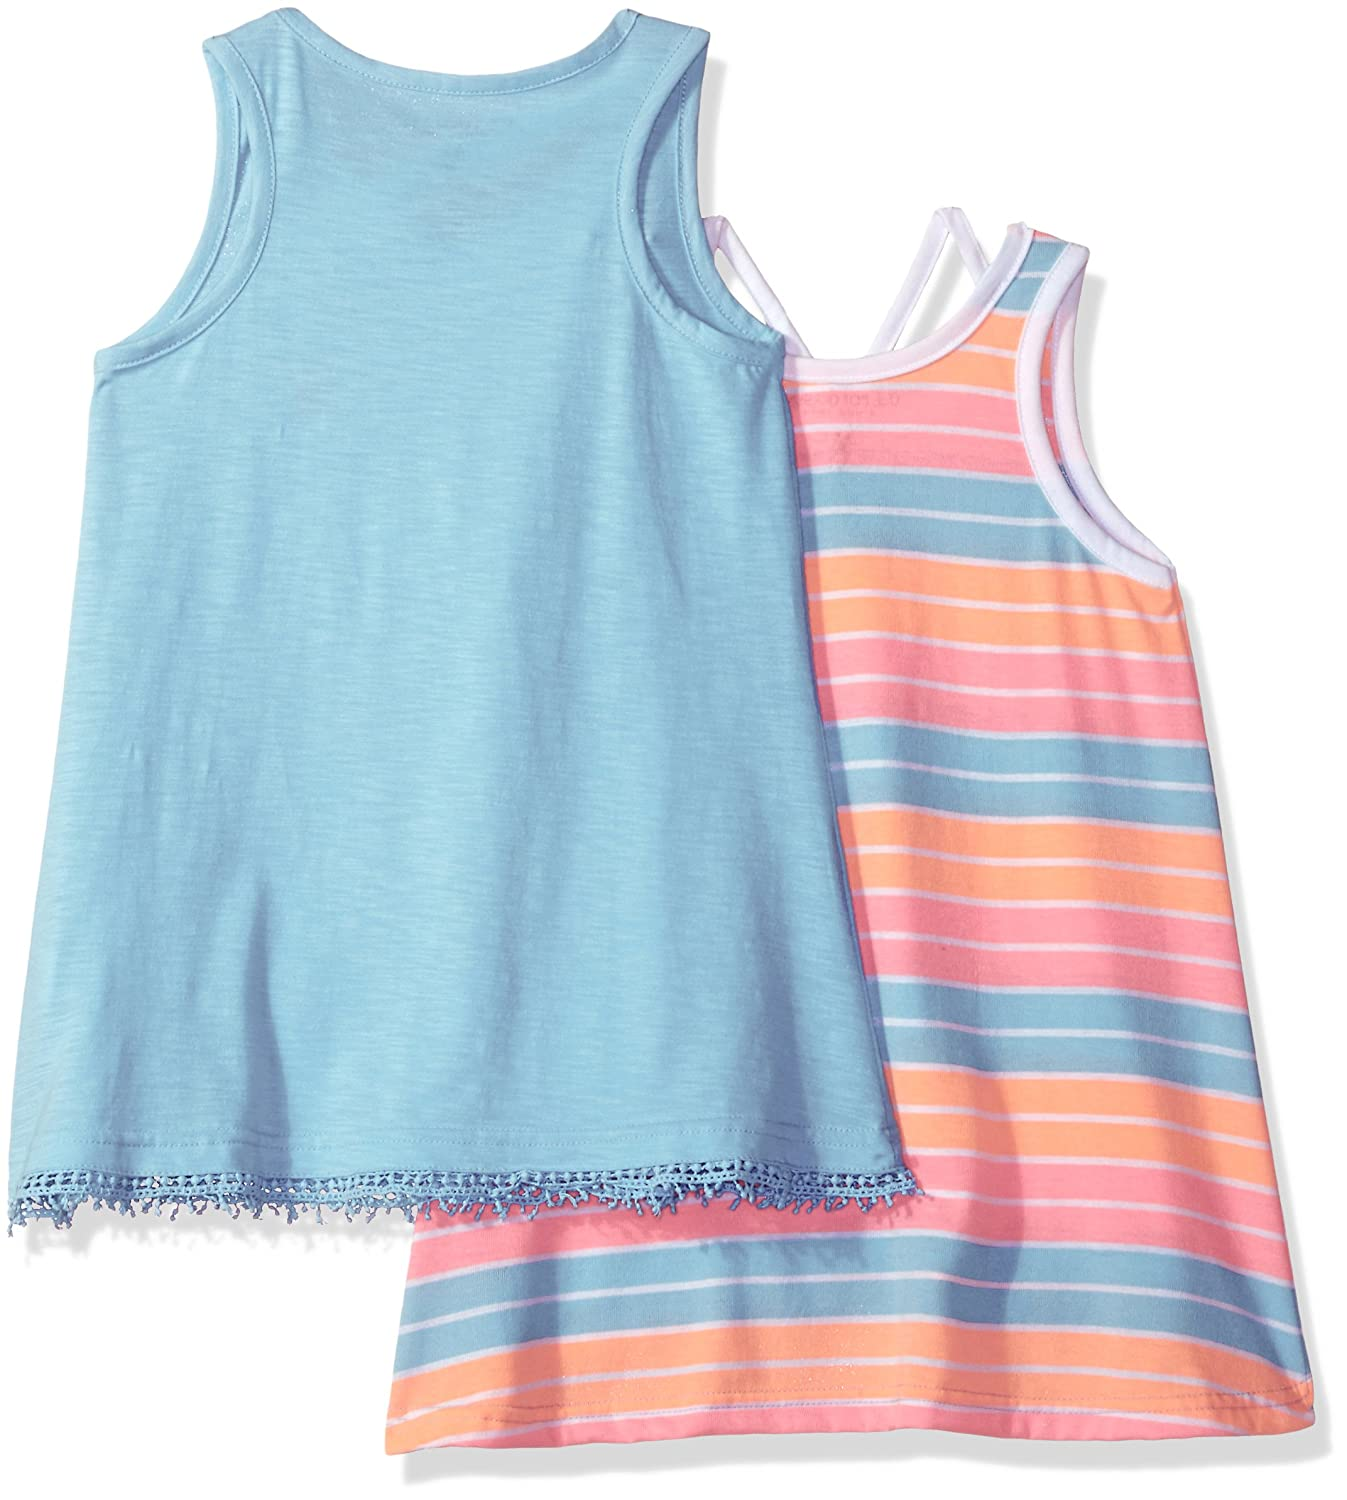 Girls Big 2 Pack Tank Tops U.S Polo Assn 1 Stripe and 1 Solid